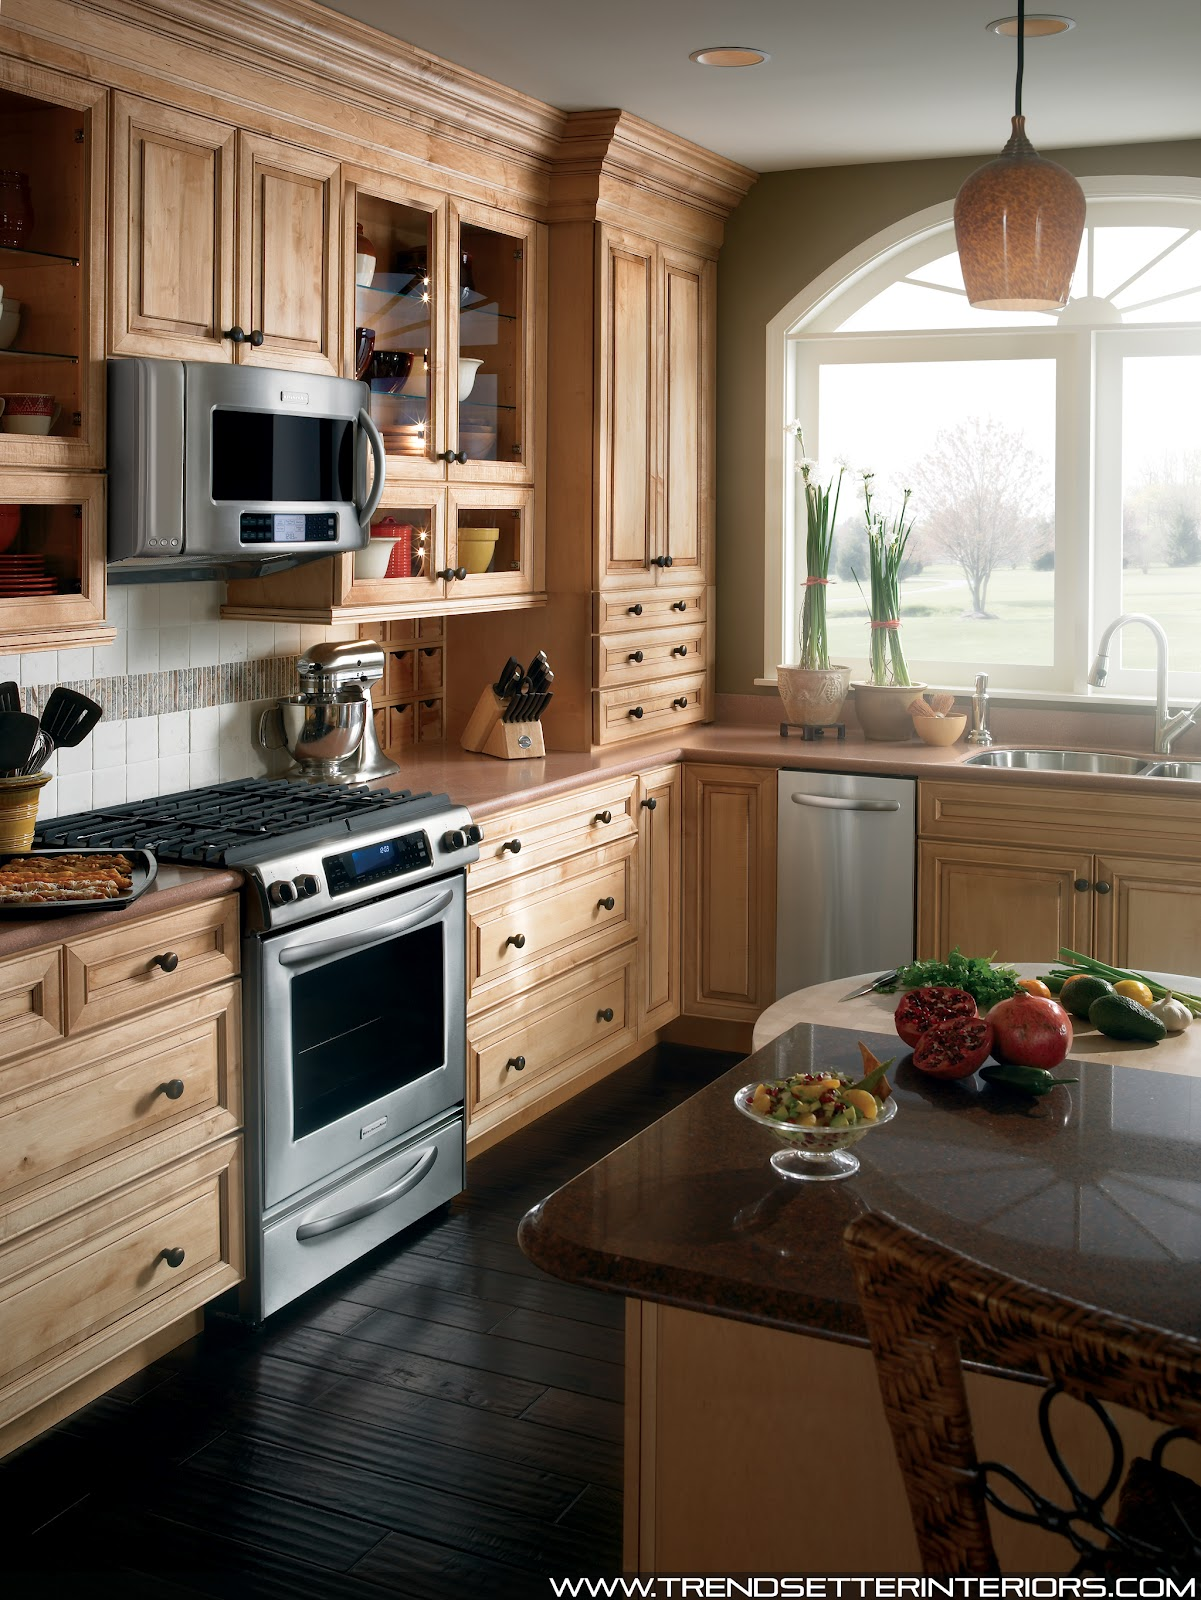 Trendsetter Interiors: Kitchen Designs by KitchenAid ...